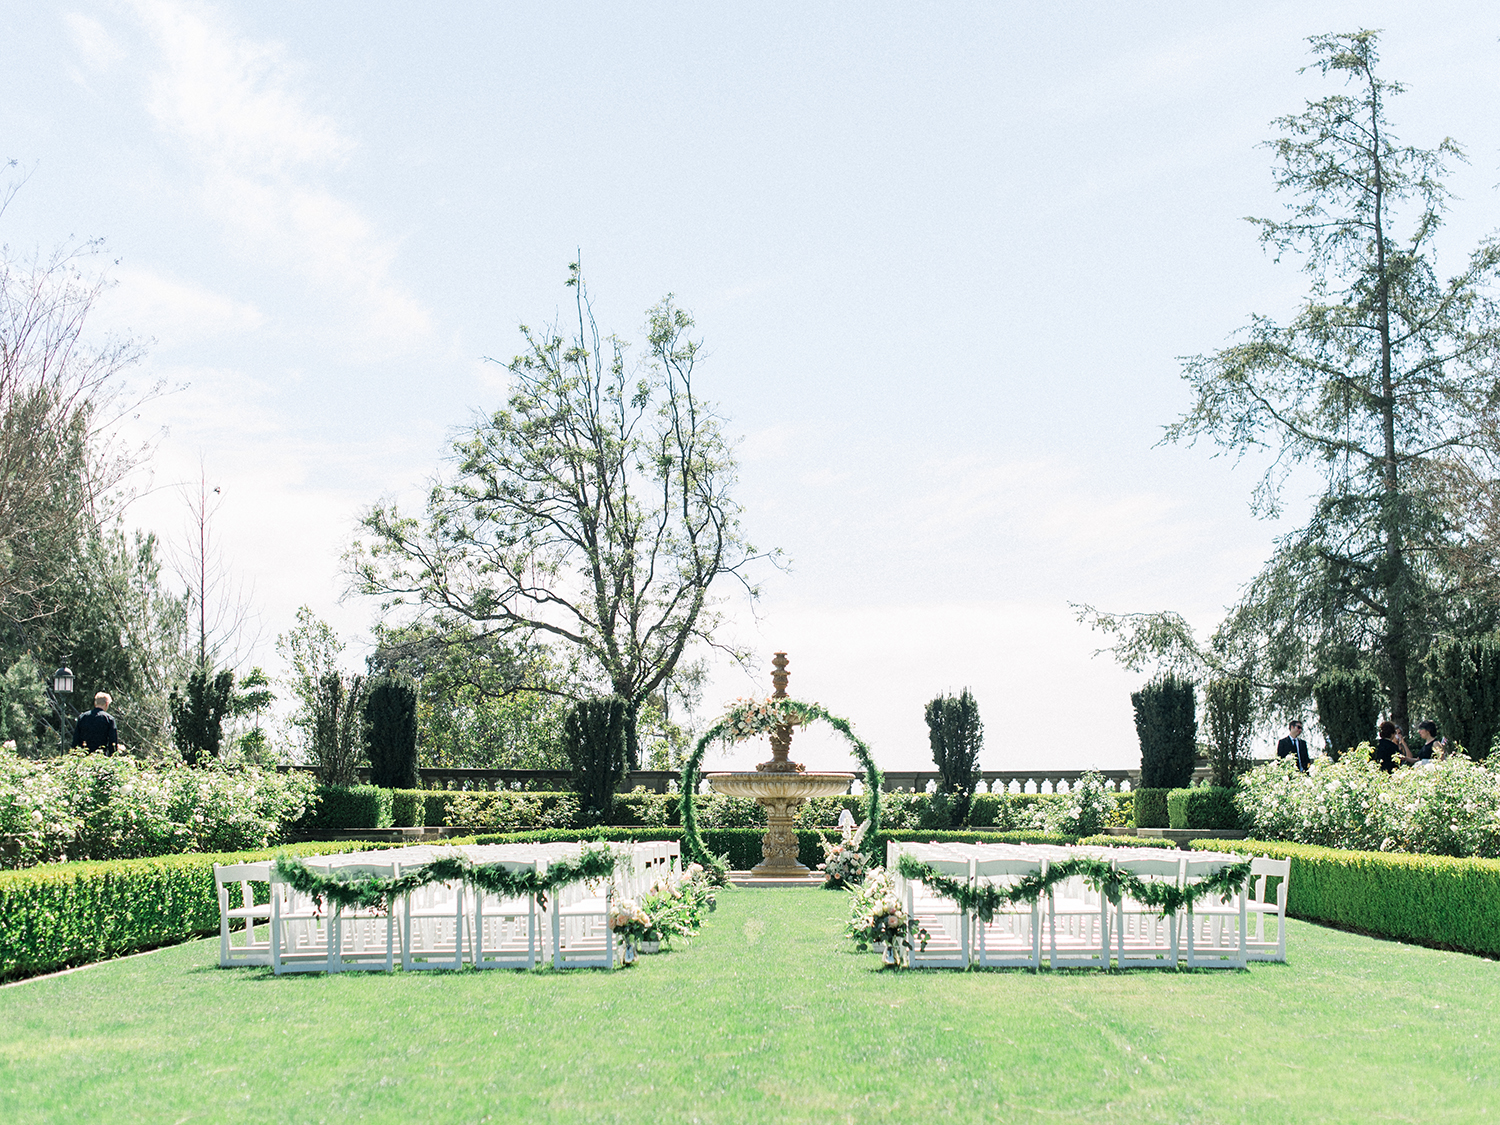 Romantic and Classic Greystone Mansion Wedding by Lucky Day Events Co. x Jordan Galindo Photography / Ceremony Arch with circle